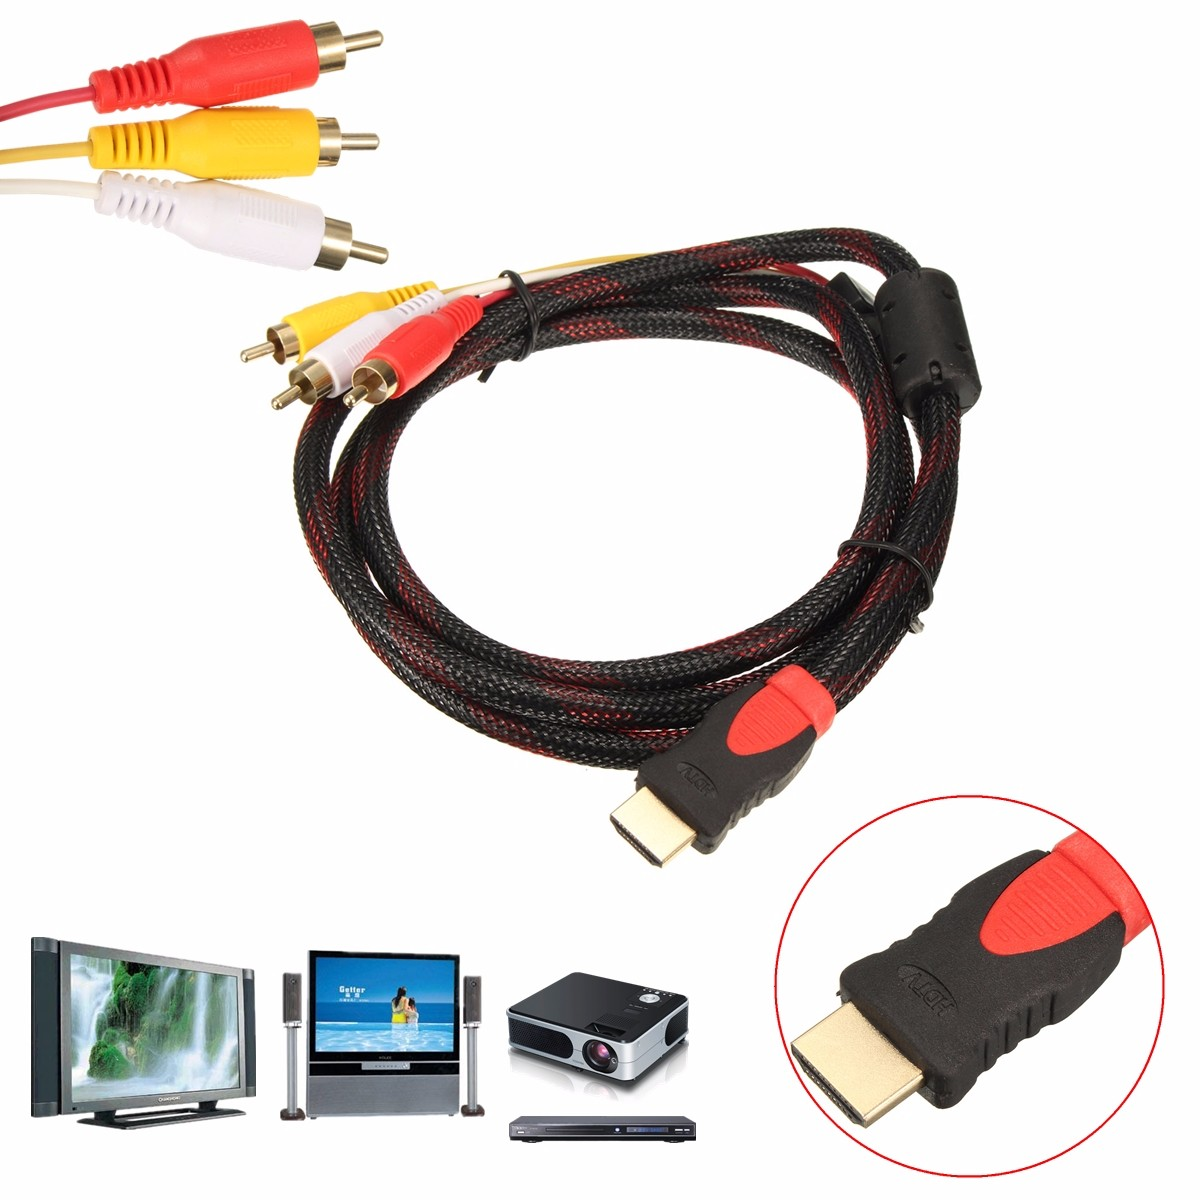 1.5M 5Ft HD Male to 3 RCA Video Audio AV Cable Cord Adapter for TV DVD 1080P PS3 Xbox